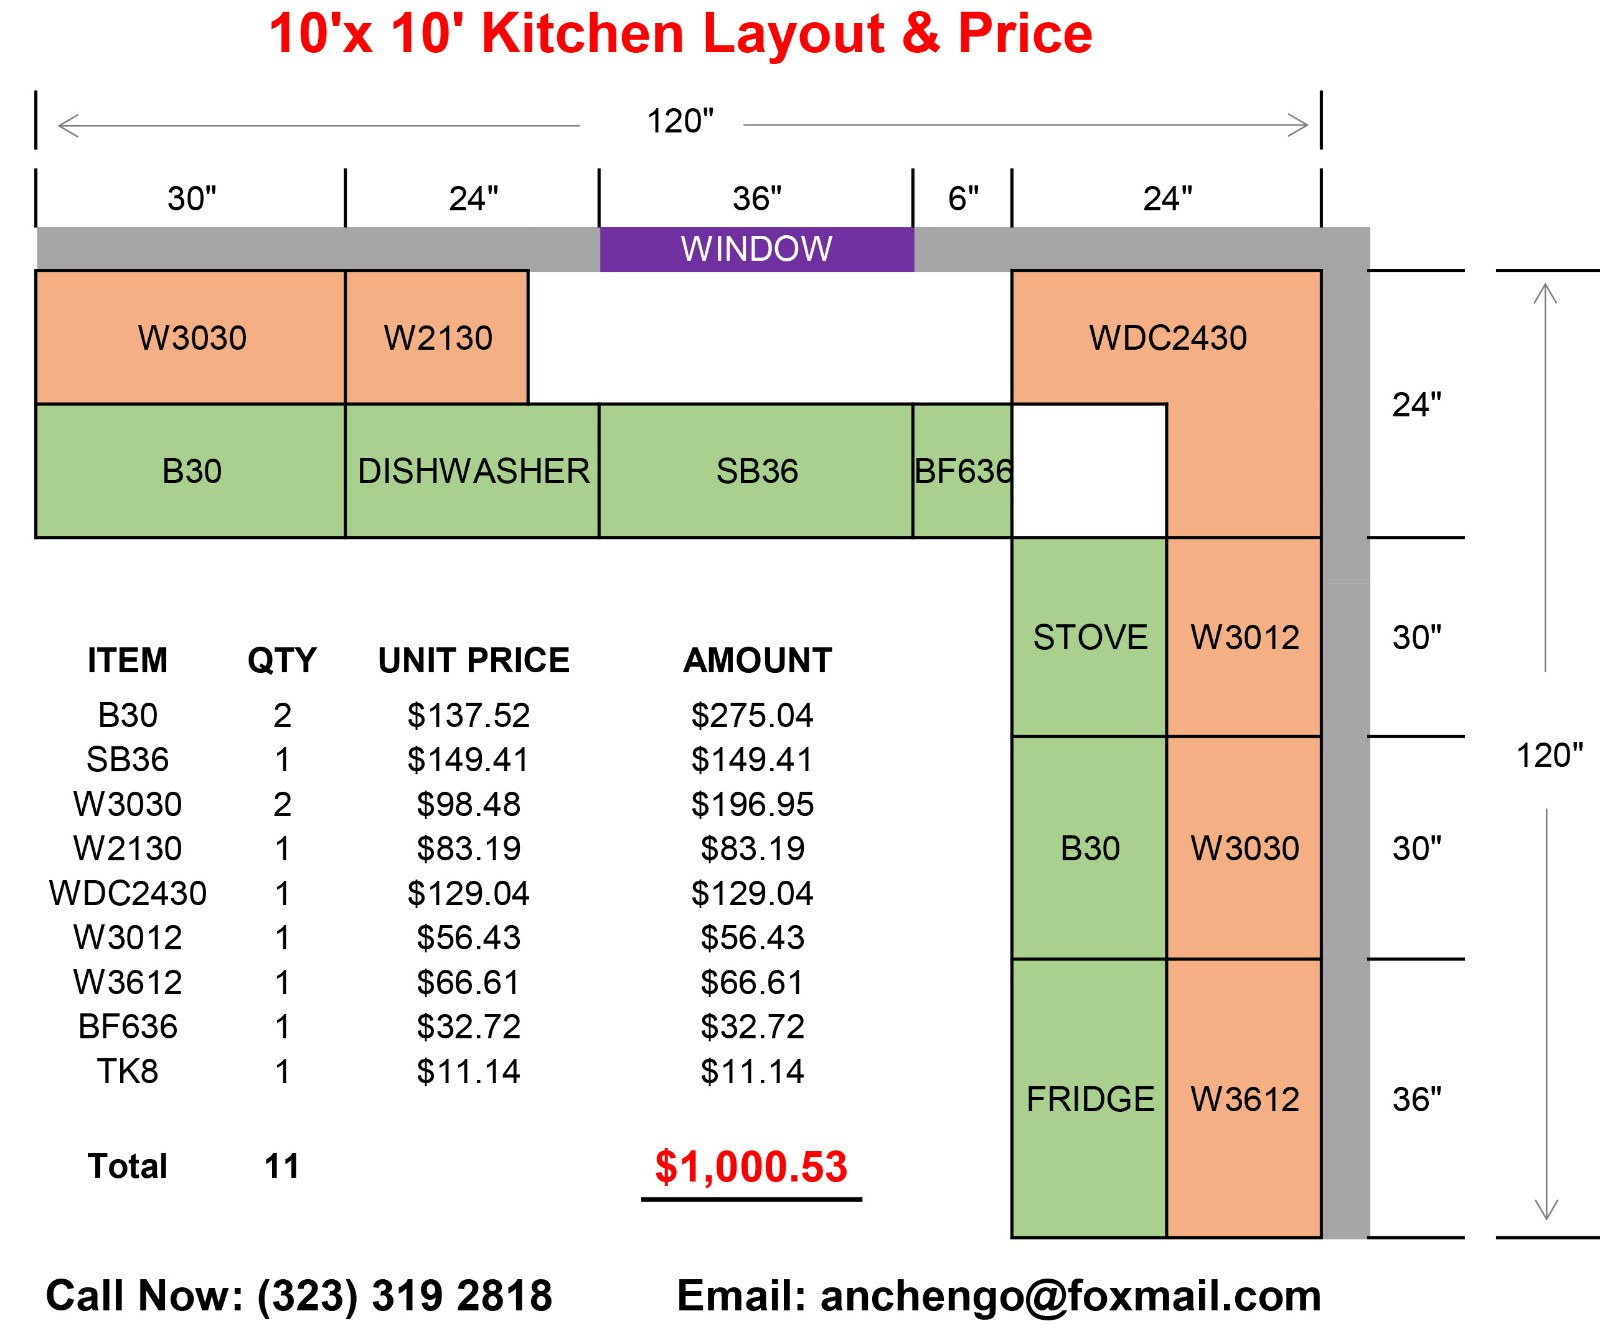 2 Kitchen 10'x 10' Layout & 